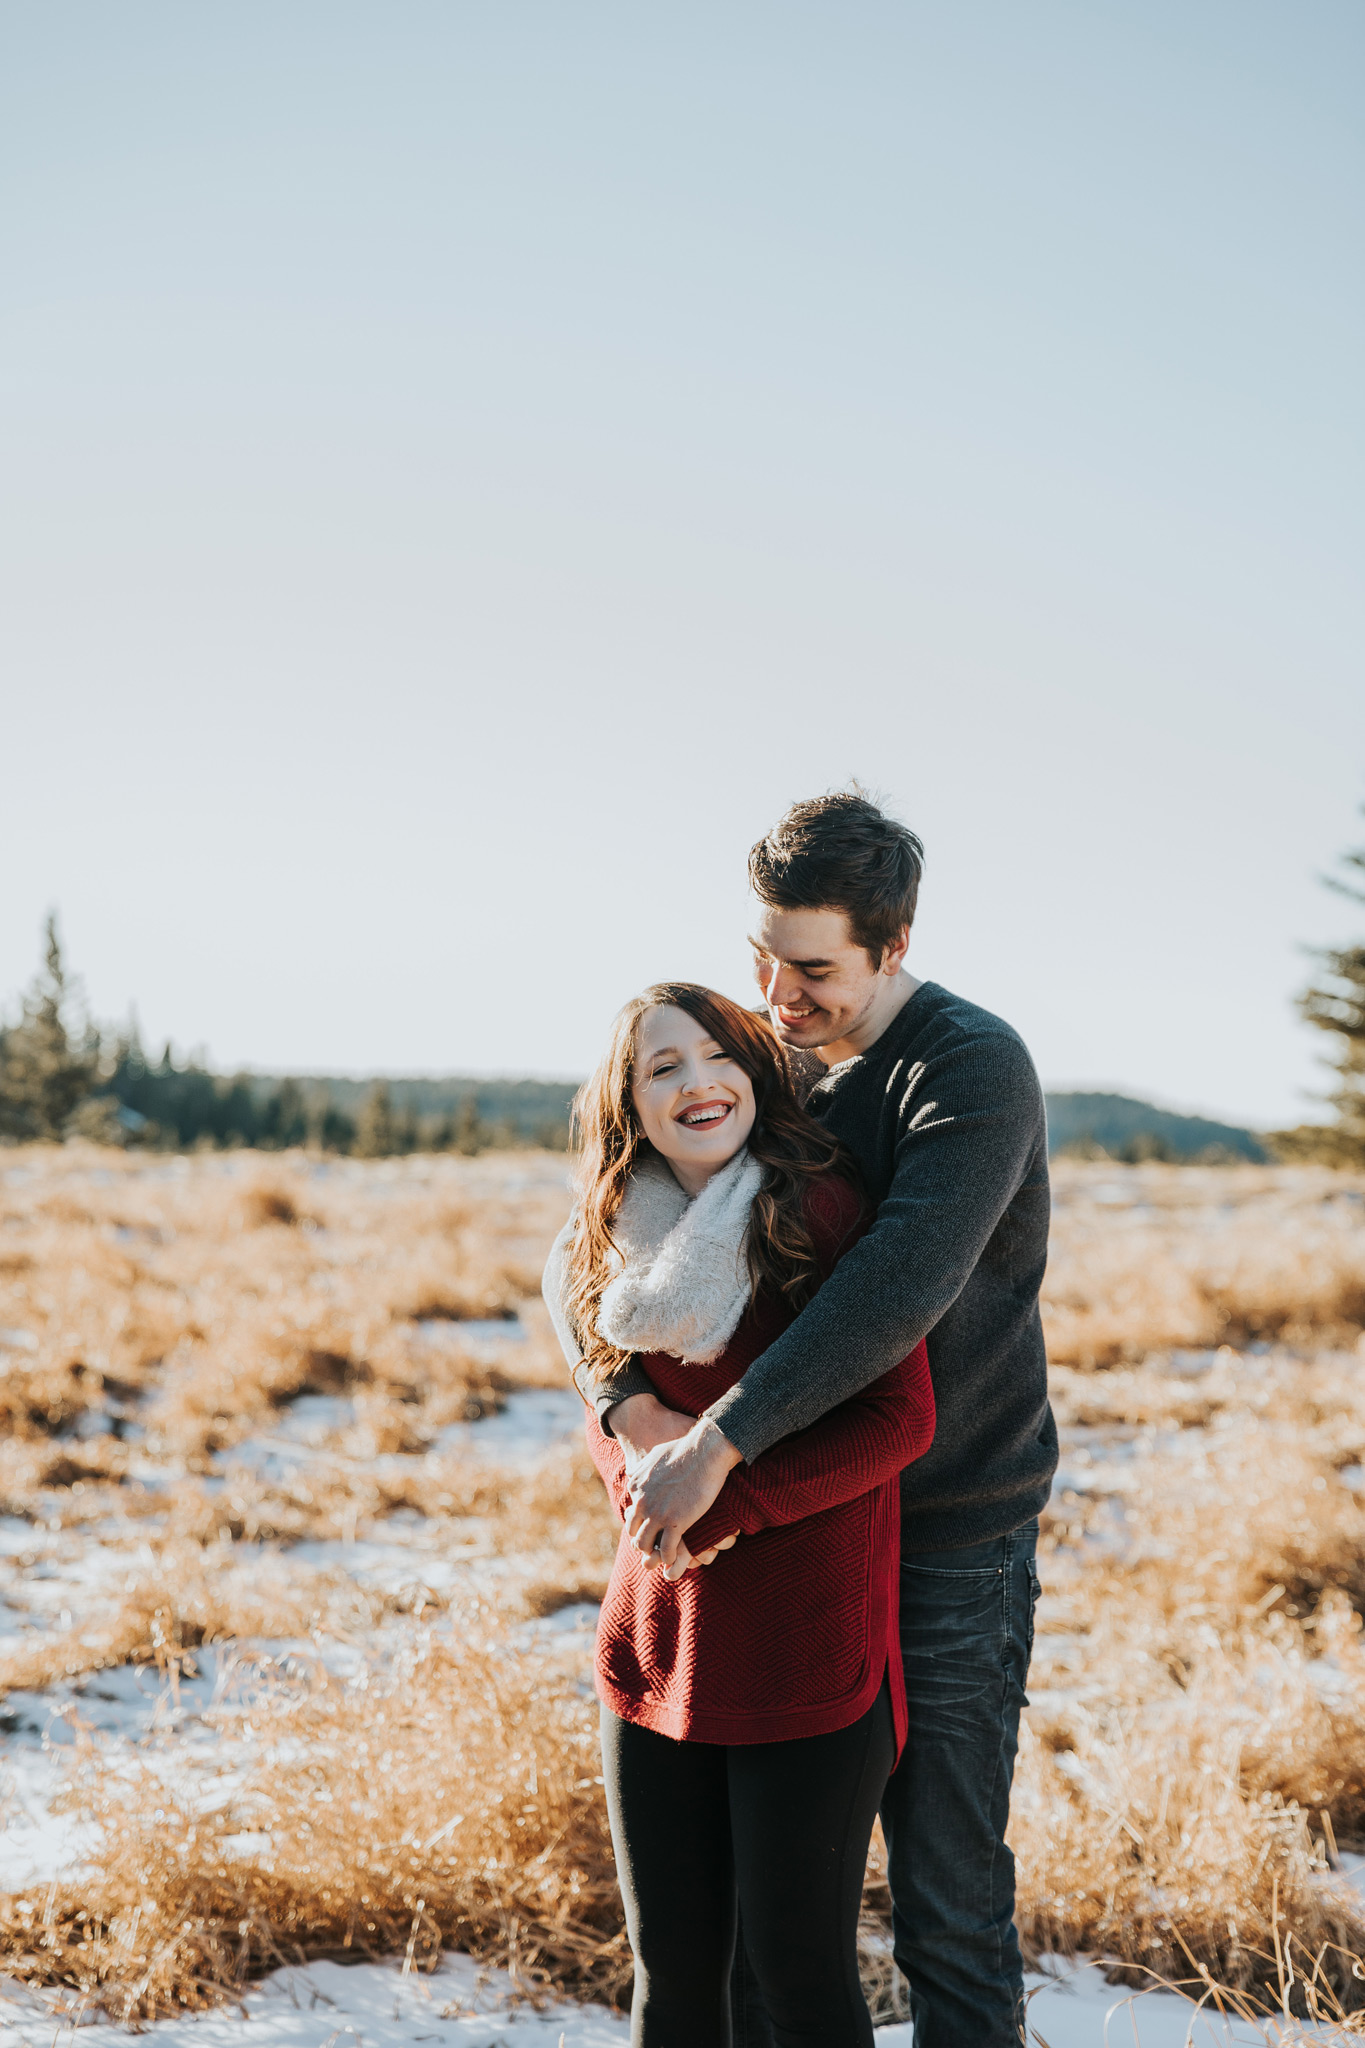 man embraces girl from behind laughing engagement photo